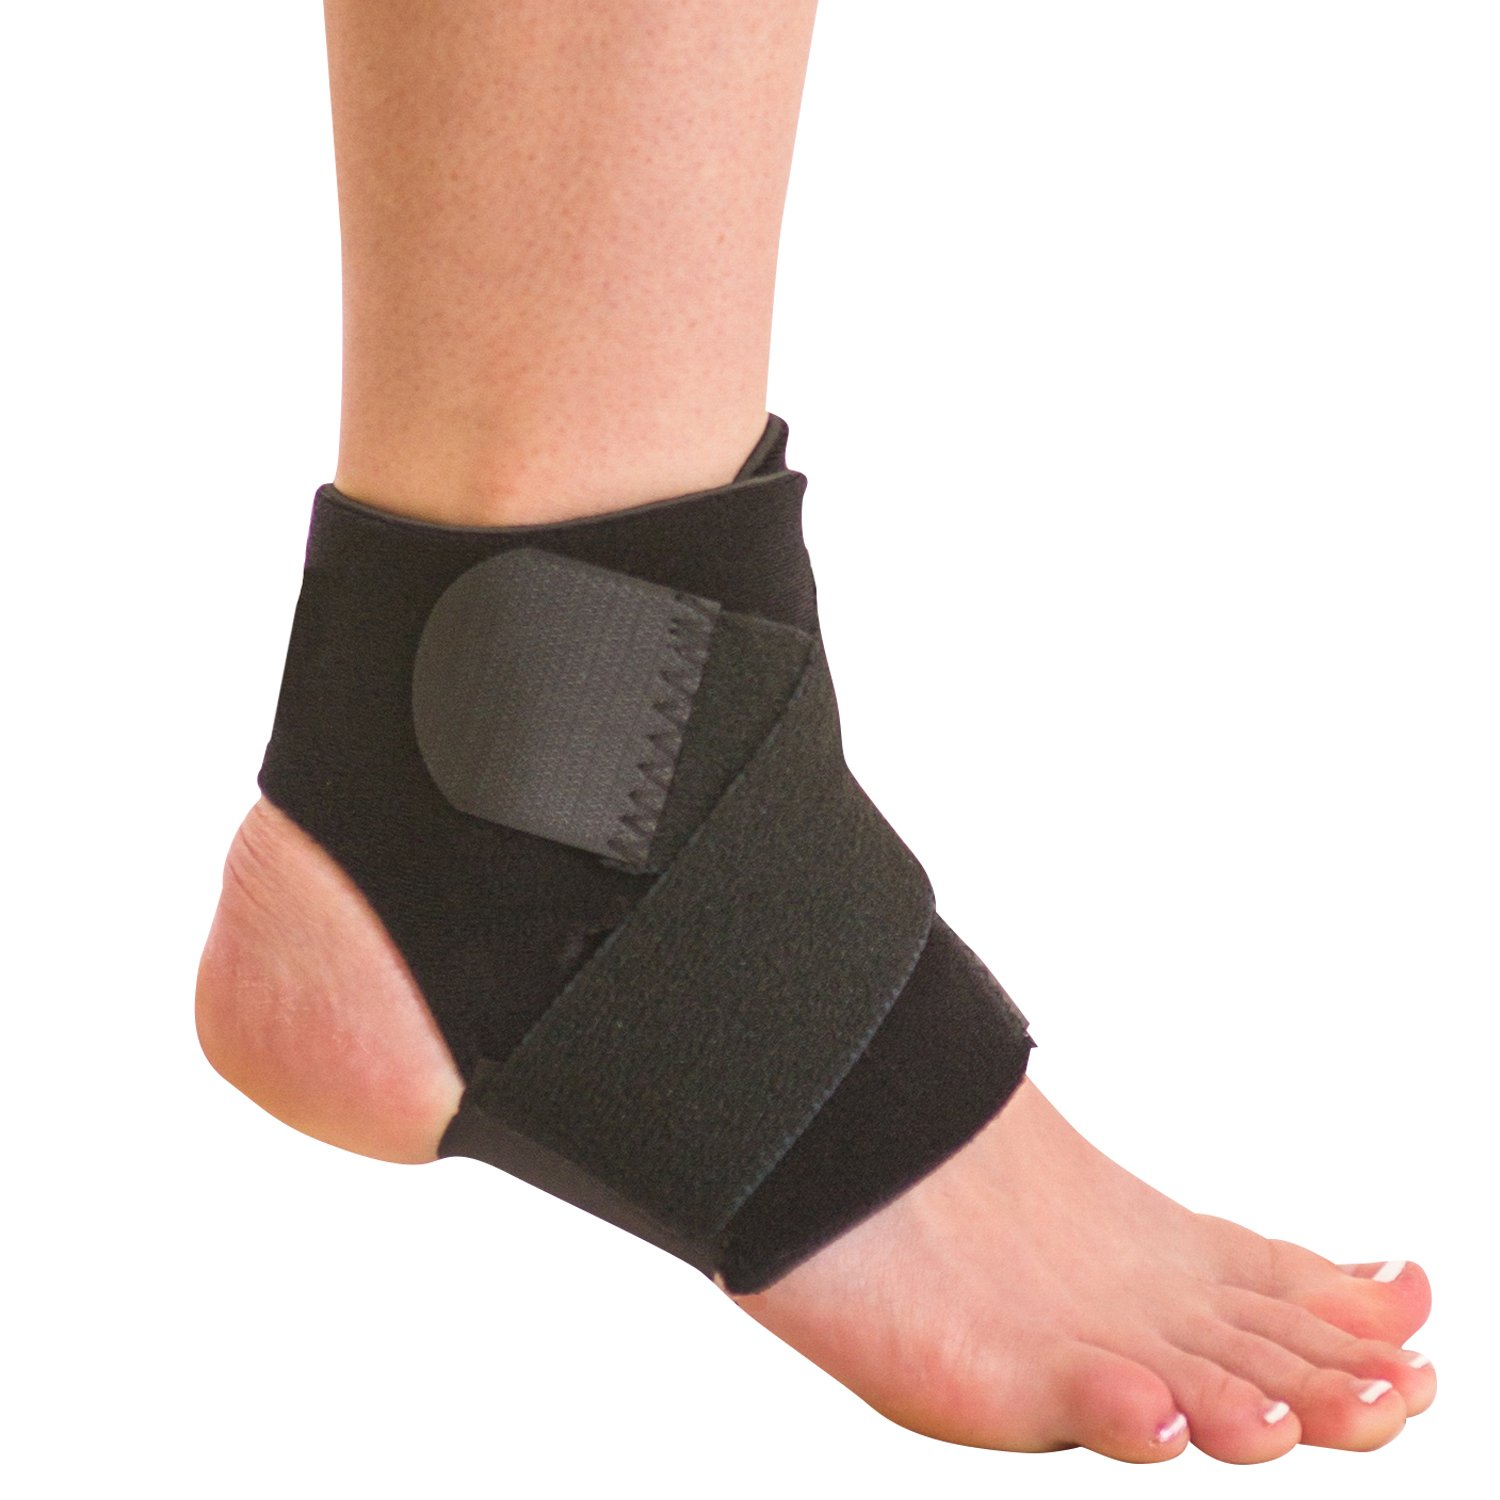 e36c3f565f Amazon.com: BraceAbility Neoprene Water-Resistant Ankle Brace | Compression  Foot Wrap for Swimming, Running, Surfing, Diving, Exercise, Athletic Support  ...